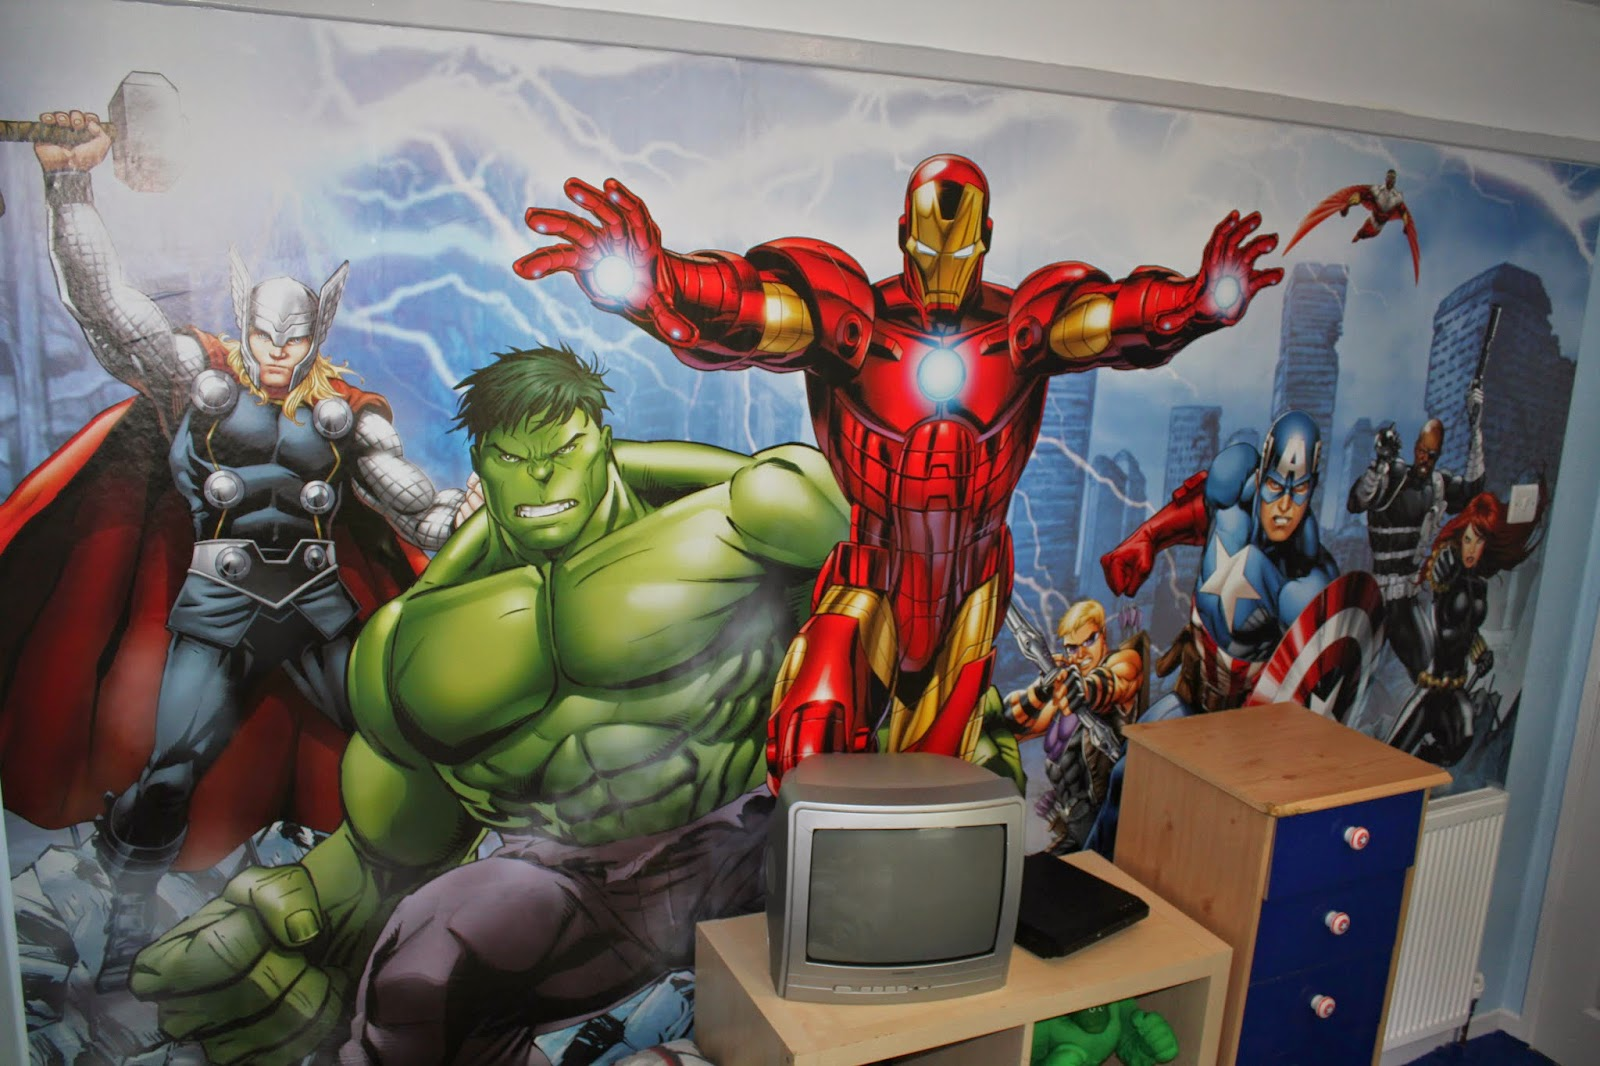 amazing kids bedroom in a box  8  Avengers Bedroom Dulux in a Box. Diy Teen Bedroom Decor  35  DIY Teen Room Decor Ideas For Girls